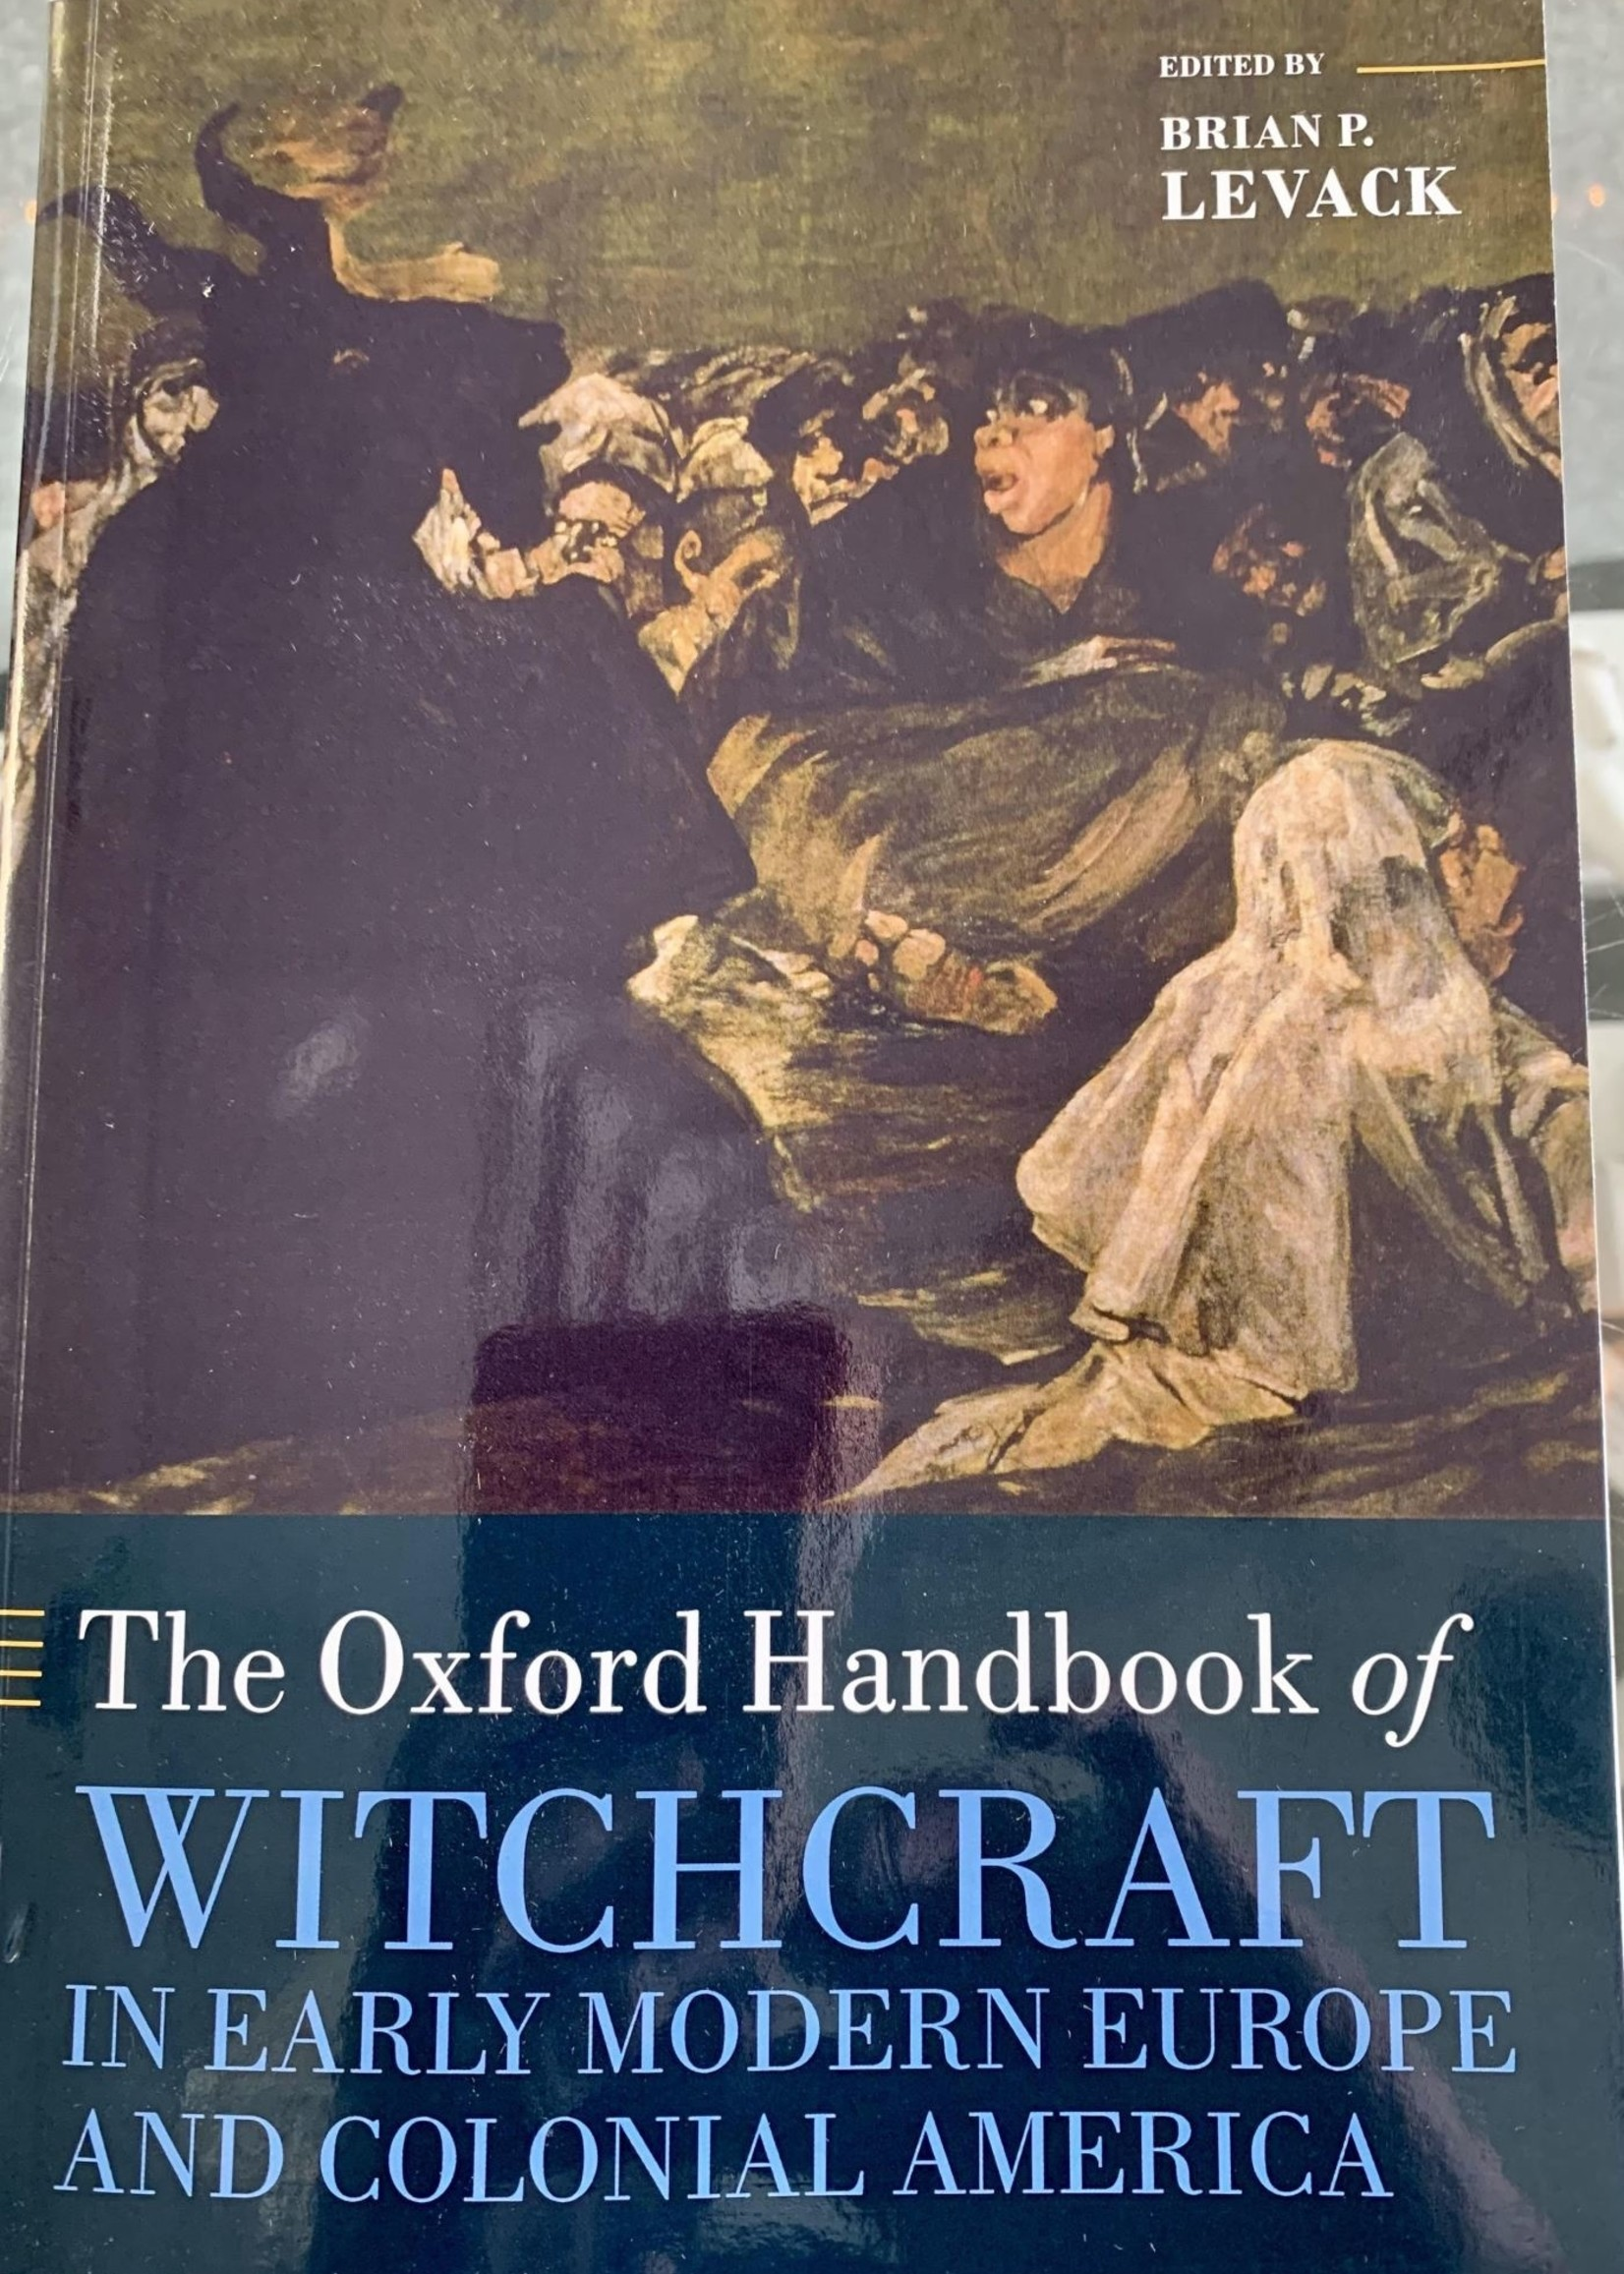 The Oxford Handbook of Witchcraft in Early Modern Europe and Colonial America - Edited by Brian P. Levack